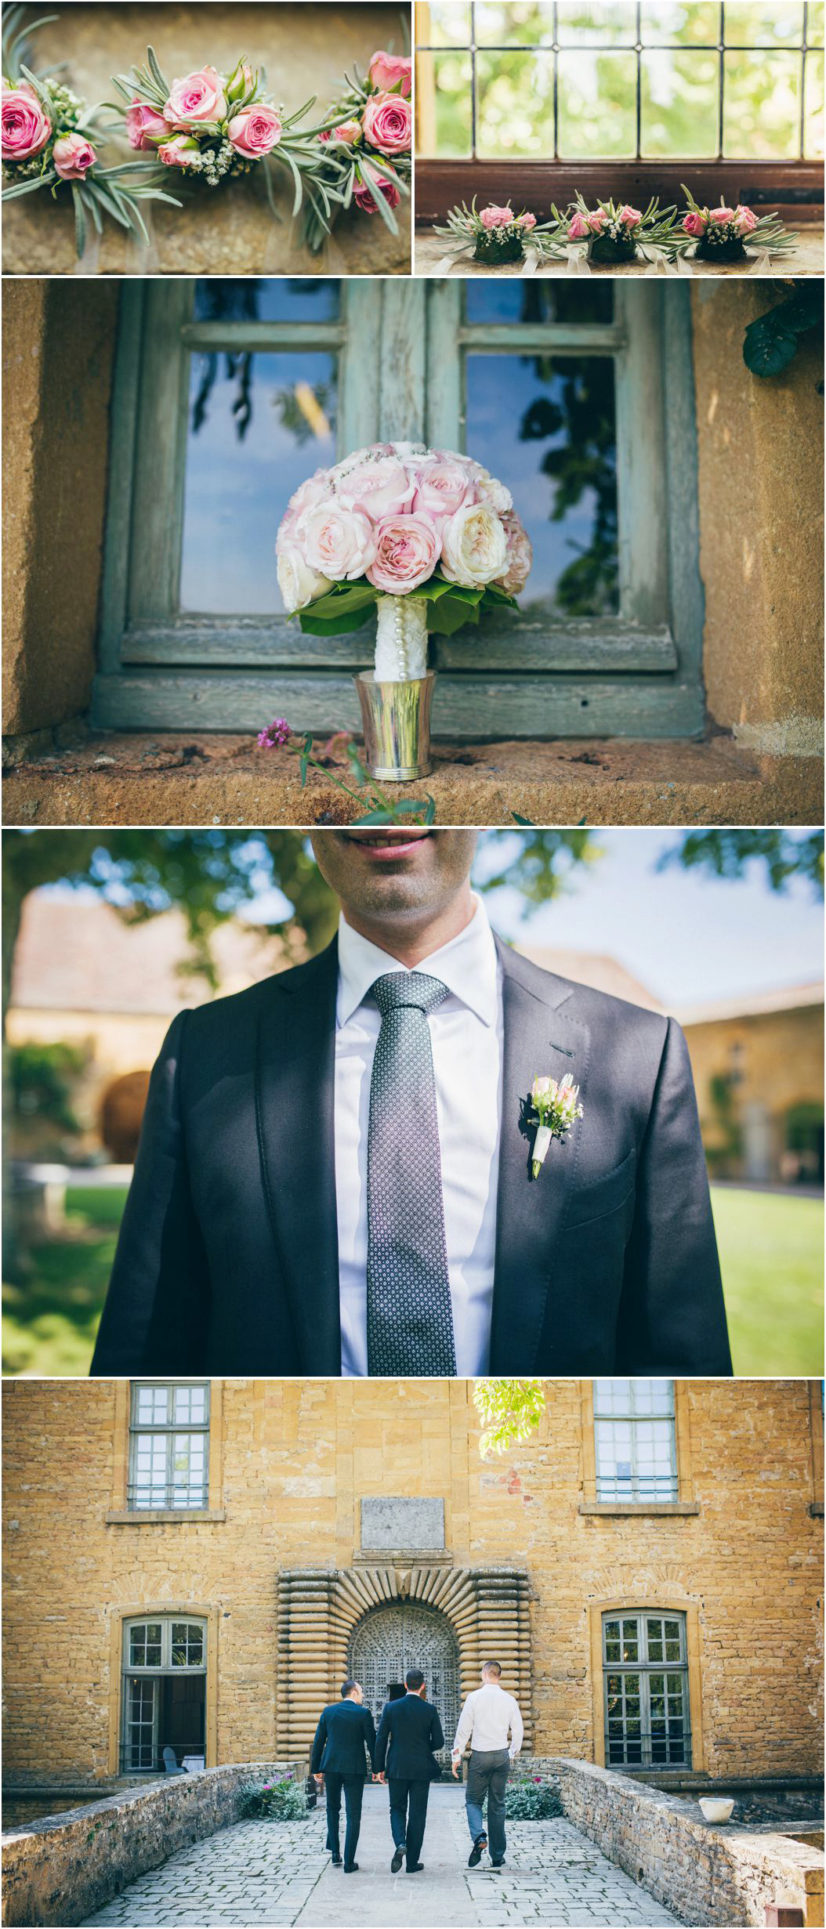 french wedding photographer ©lasdecoeur Photo and video 4